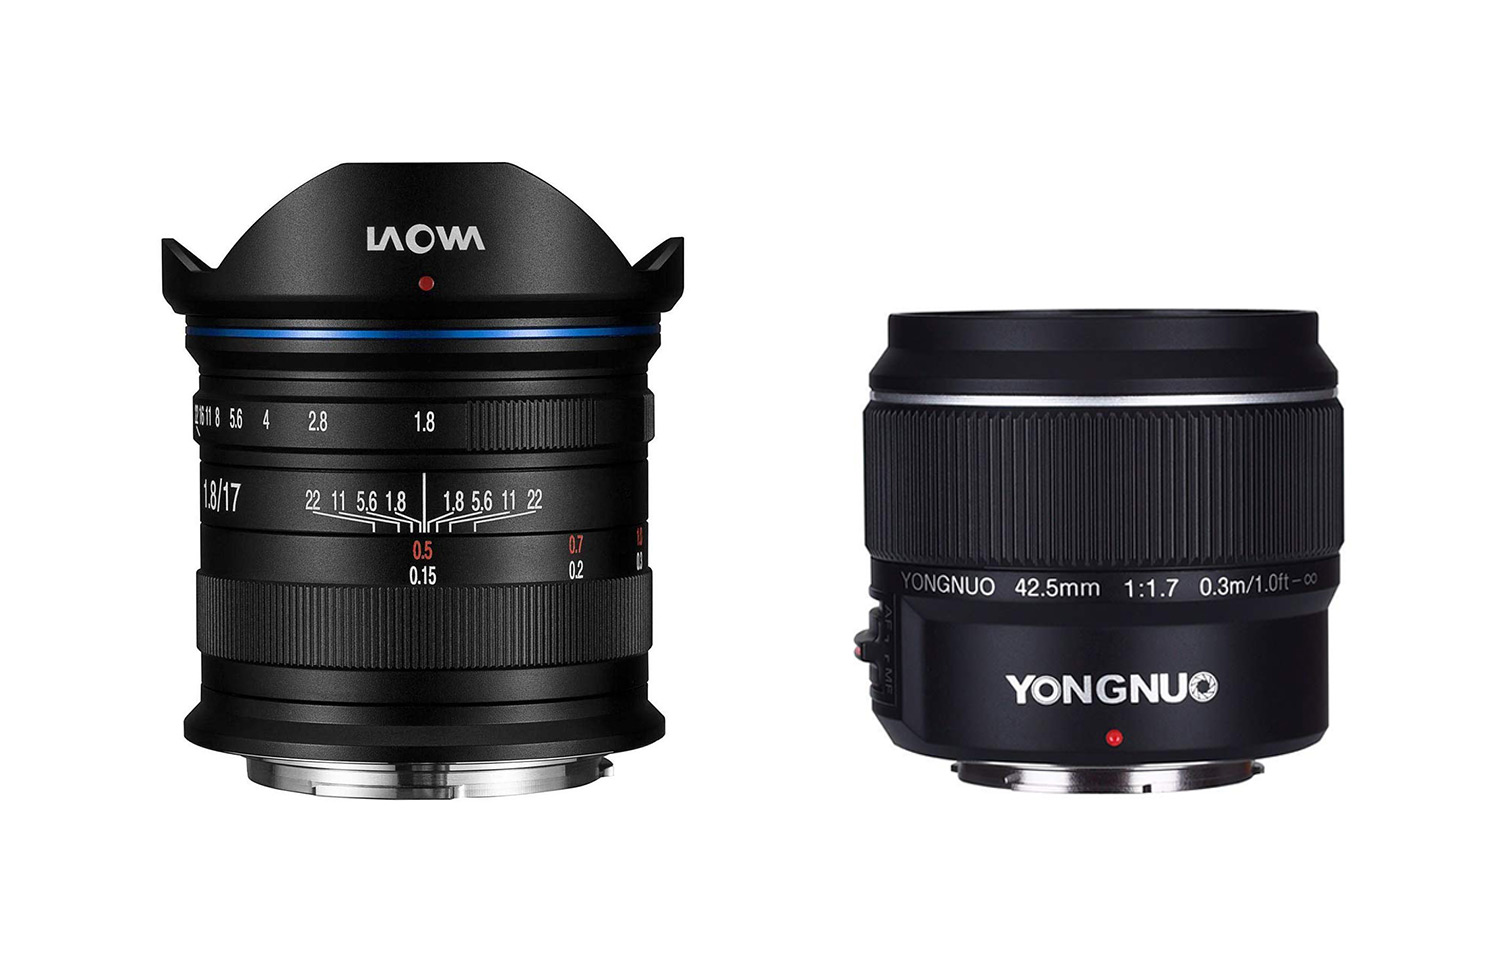 Laowa and Yongnuo to Support Micro Four Thirds Standard